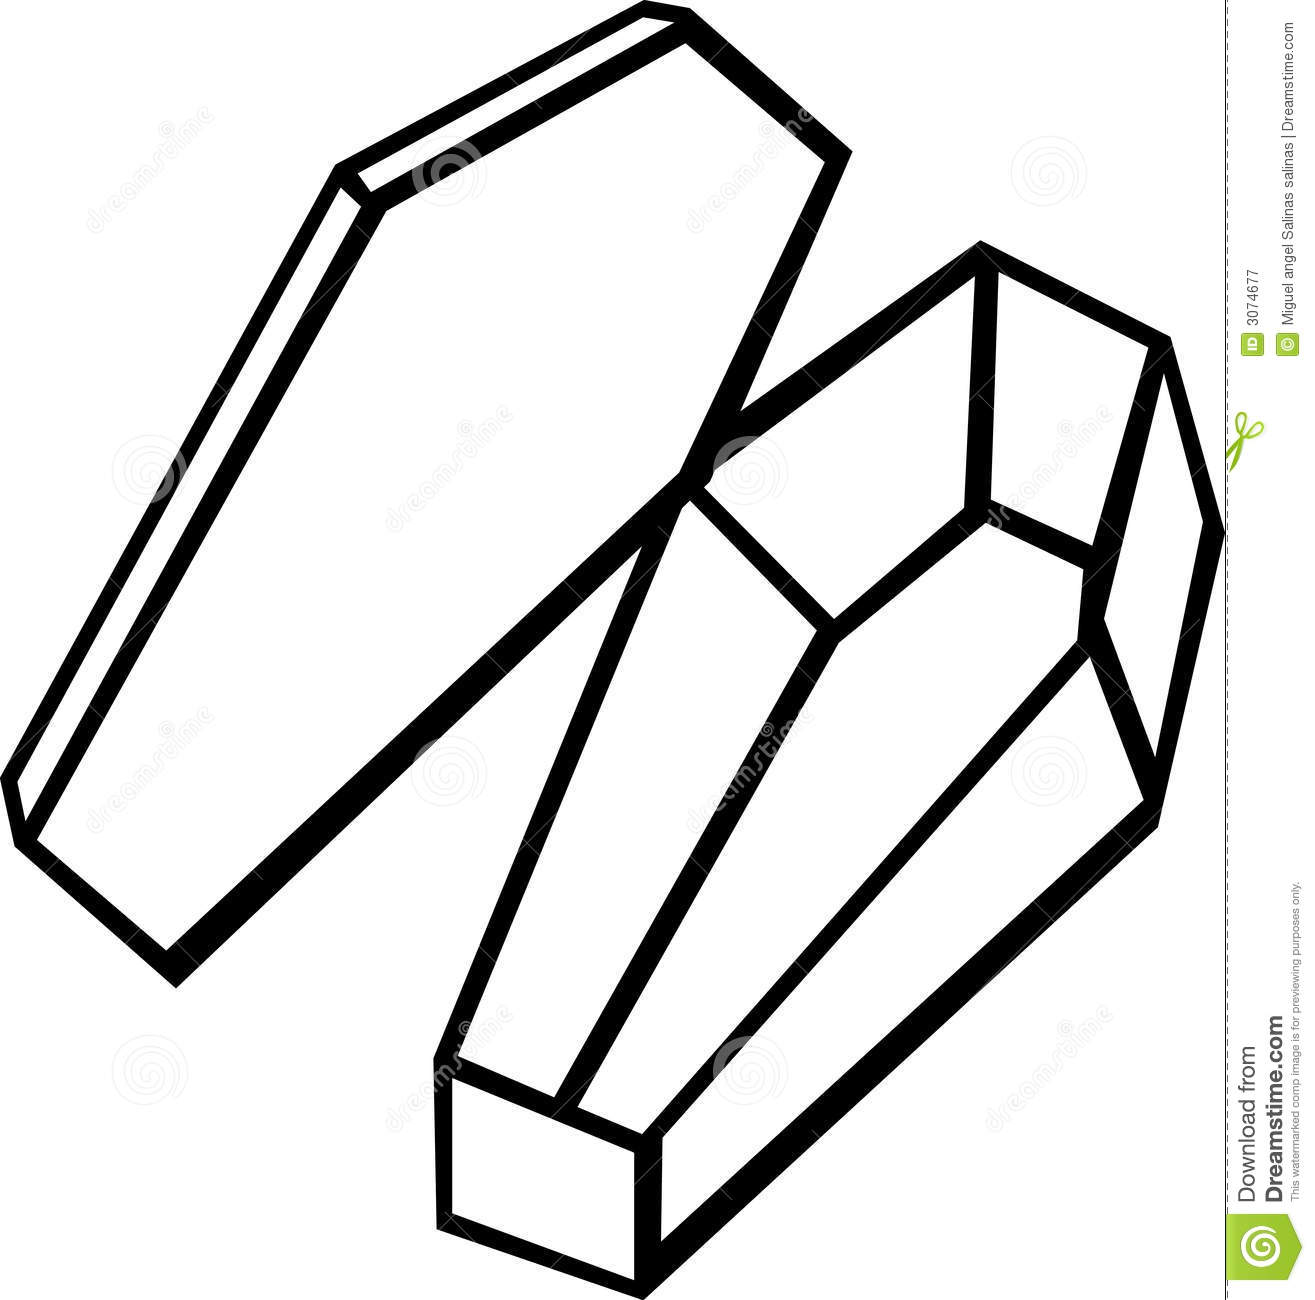 empty coffin vector illustration royalty free stock baseball clipart black and white free baseball clipart black and white free